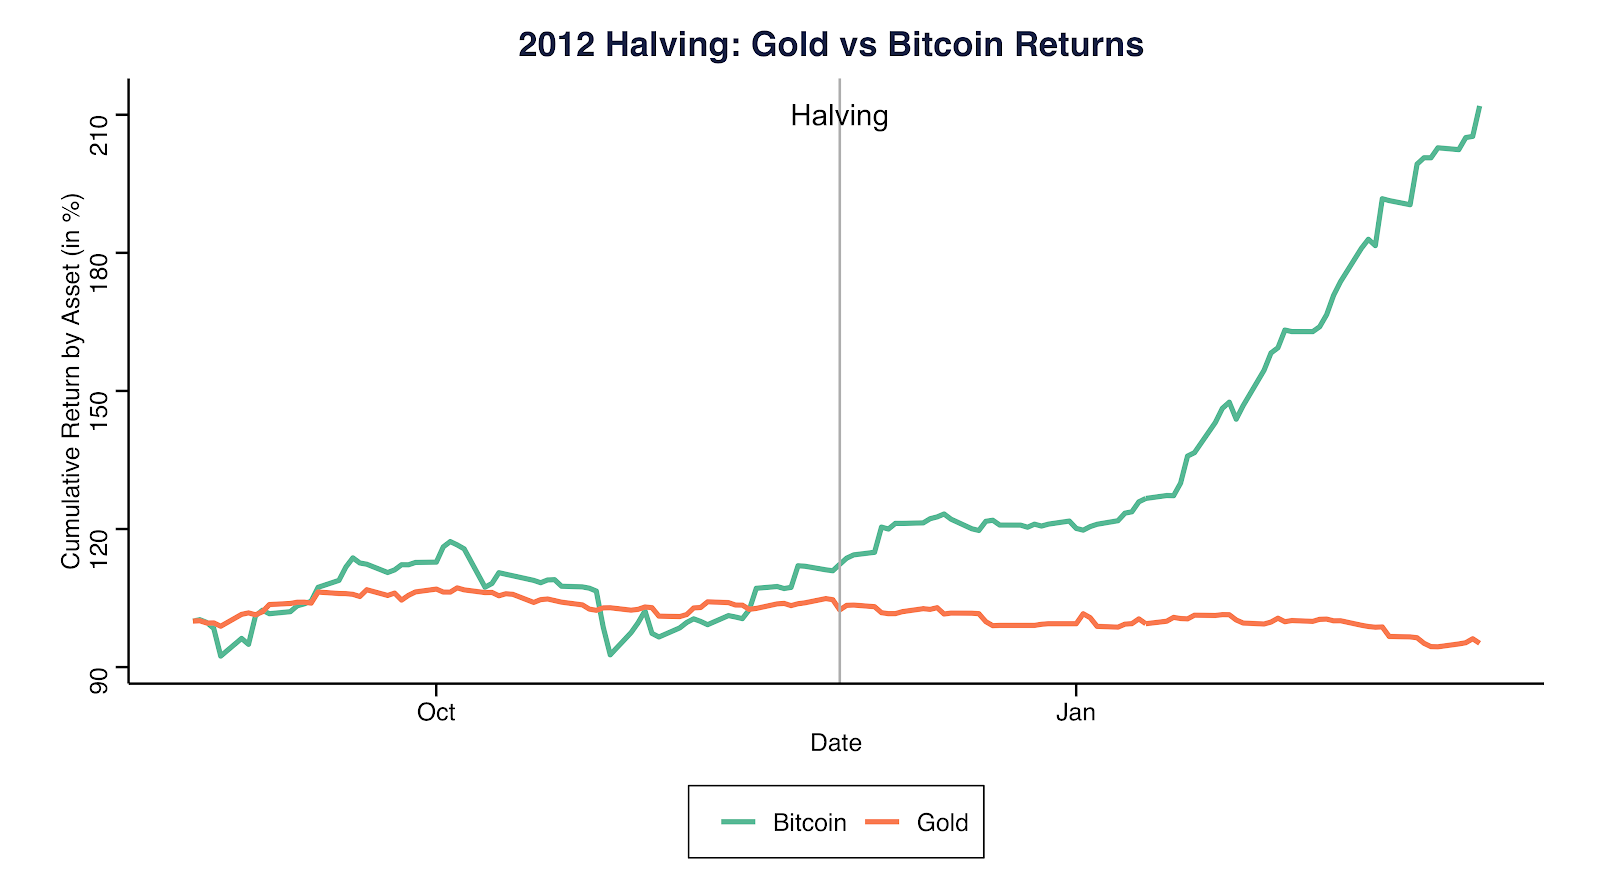 2012 Halving: Gold vs. Bitcoin returns. Source: Coinmetrics.io and Gold.org